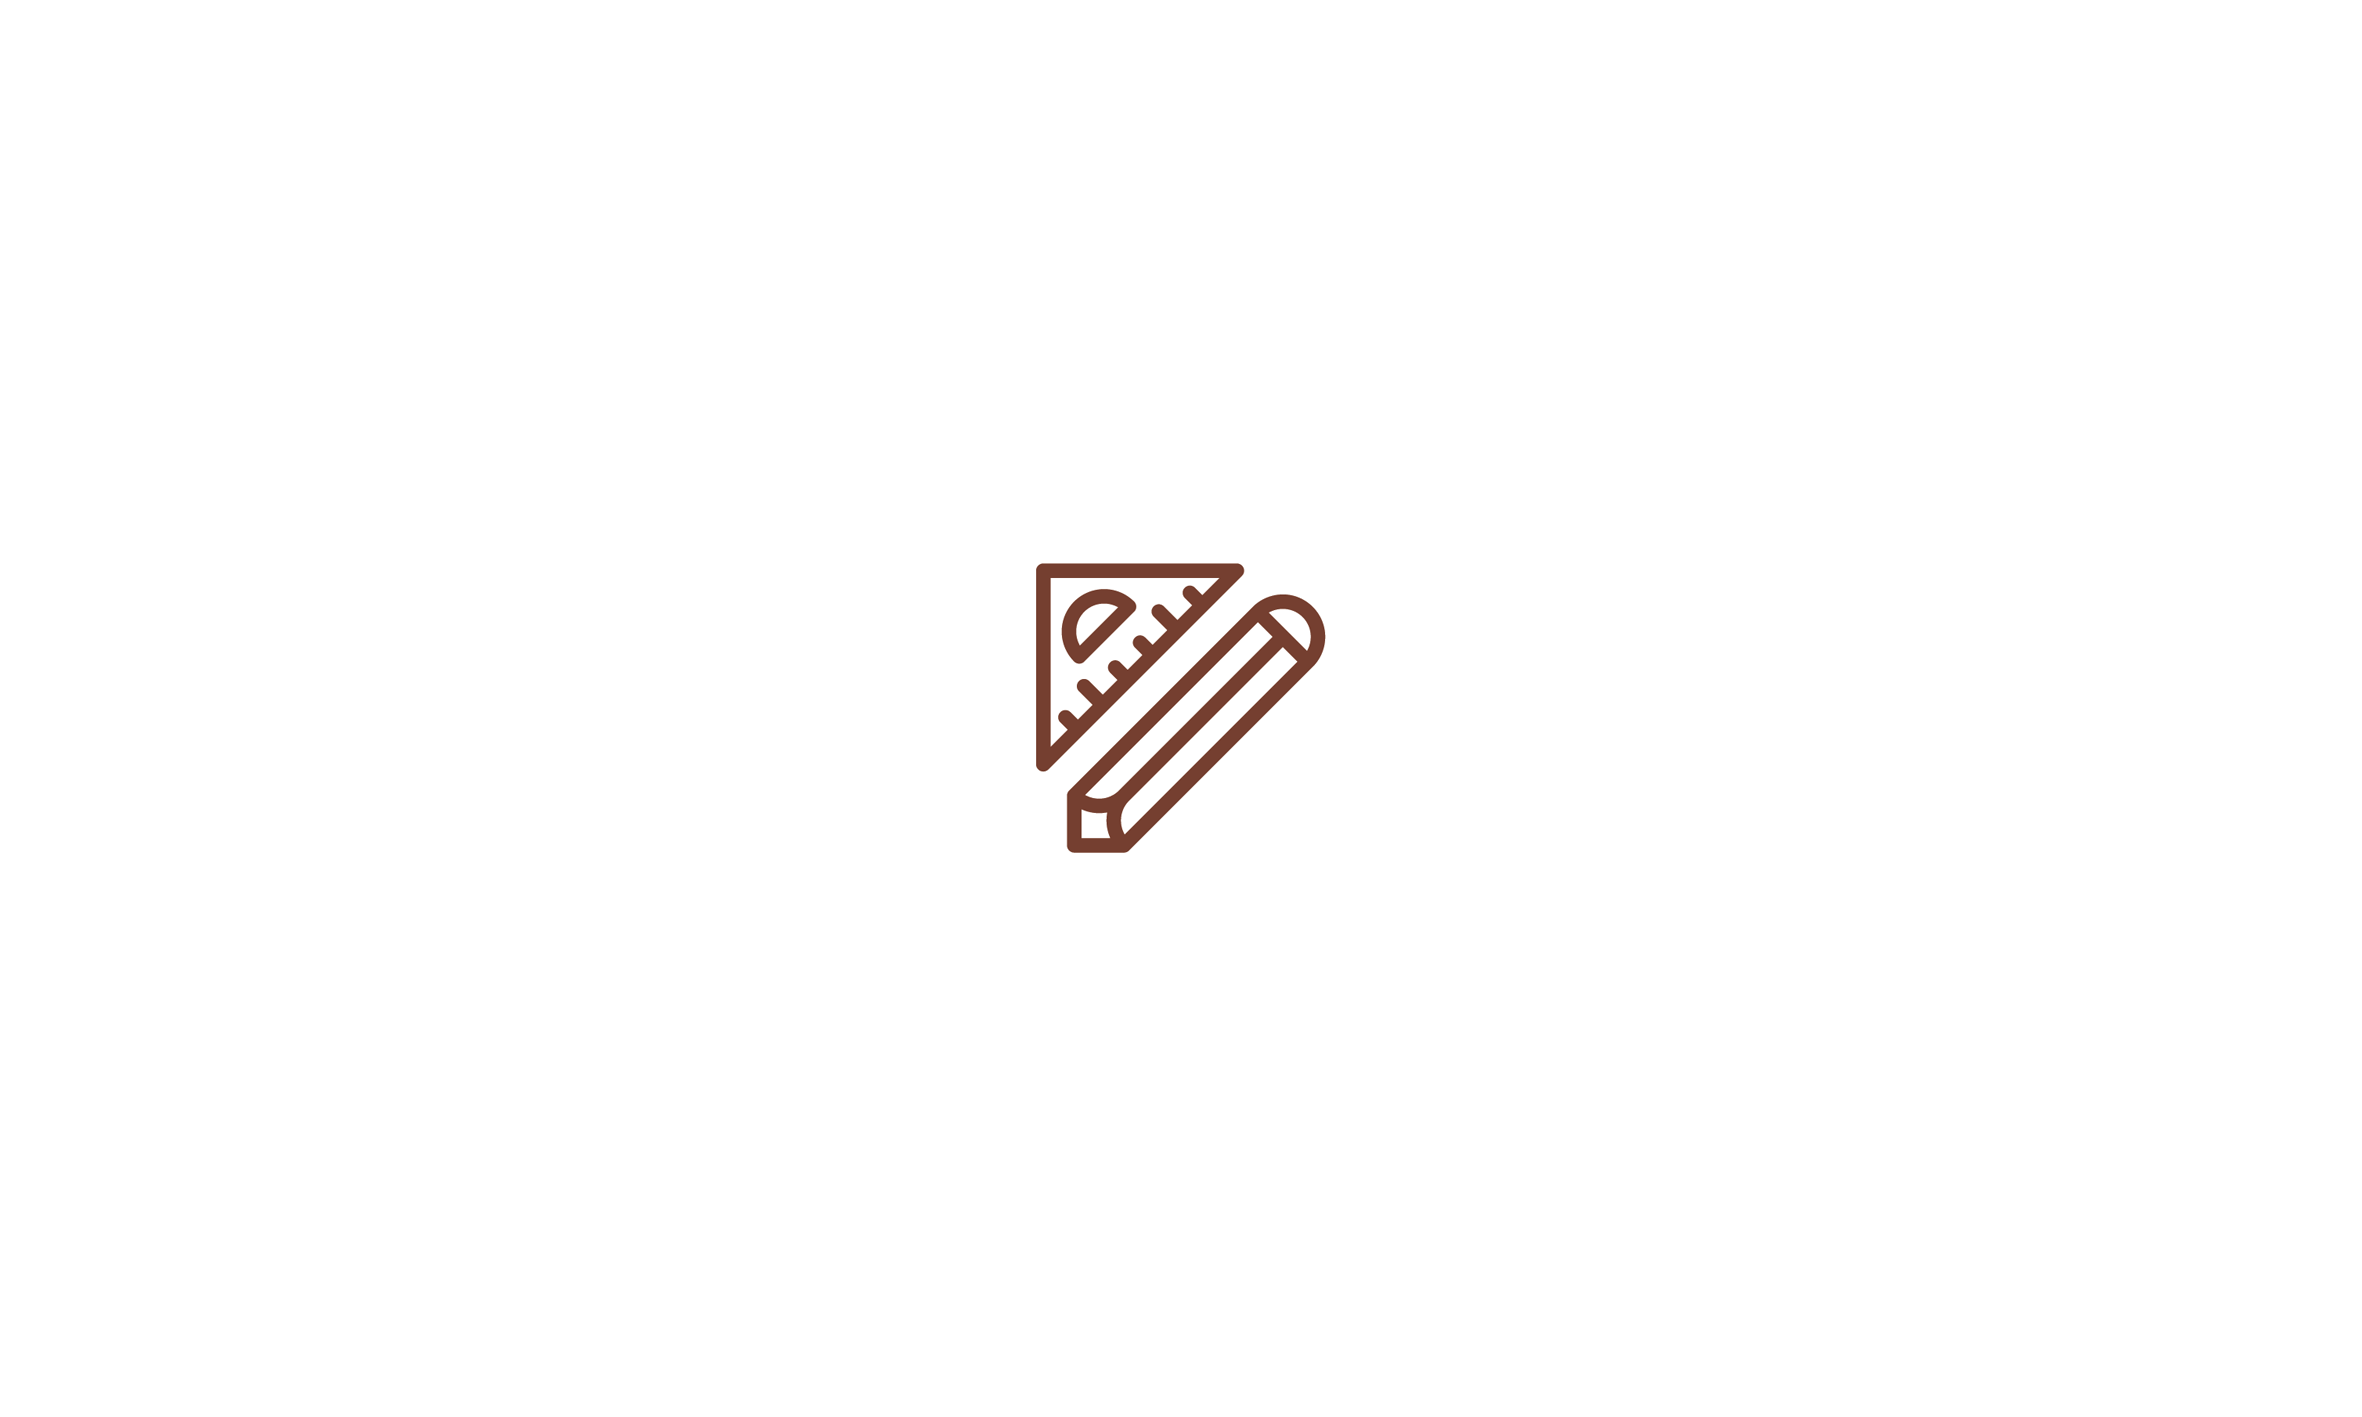 symbol_our_services_brown_space.png